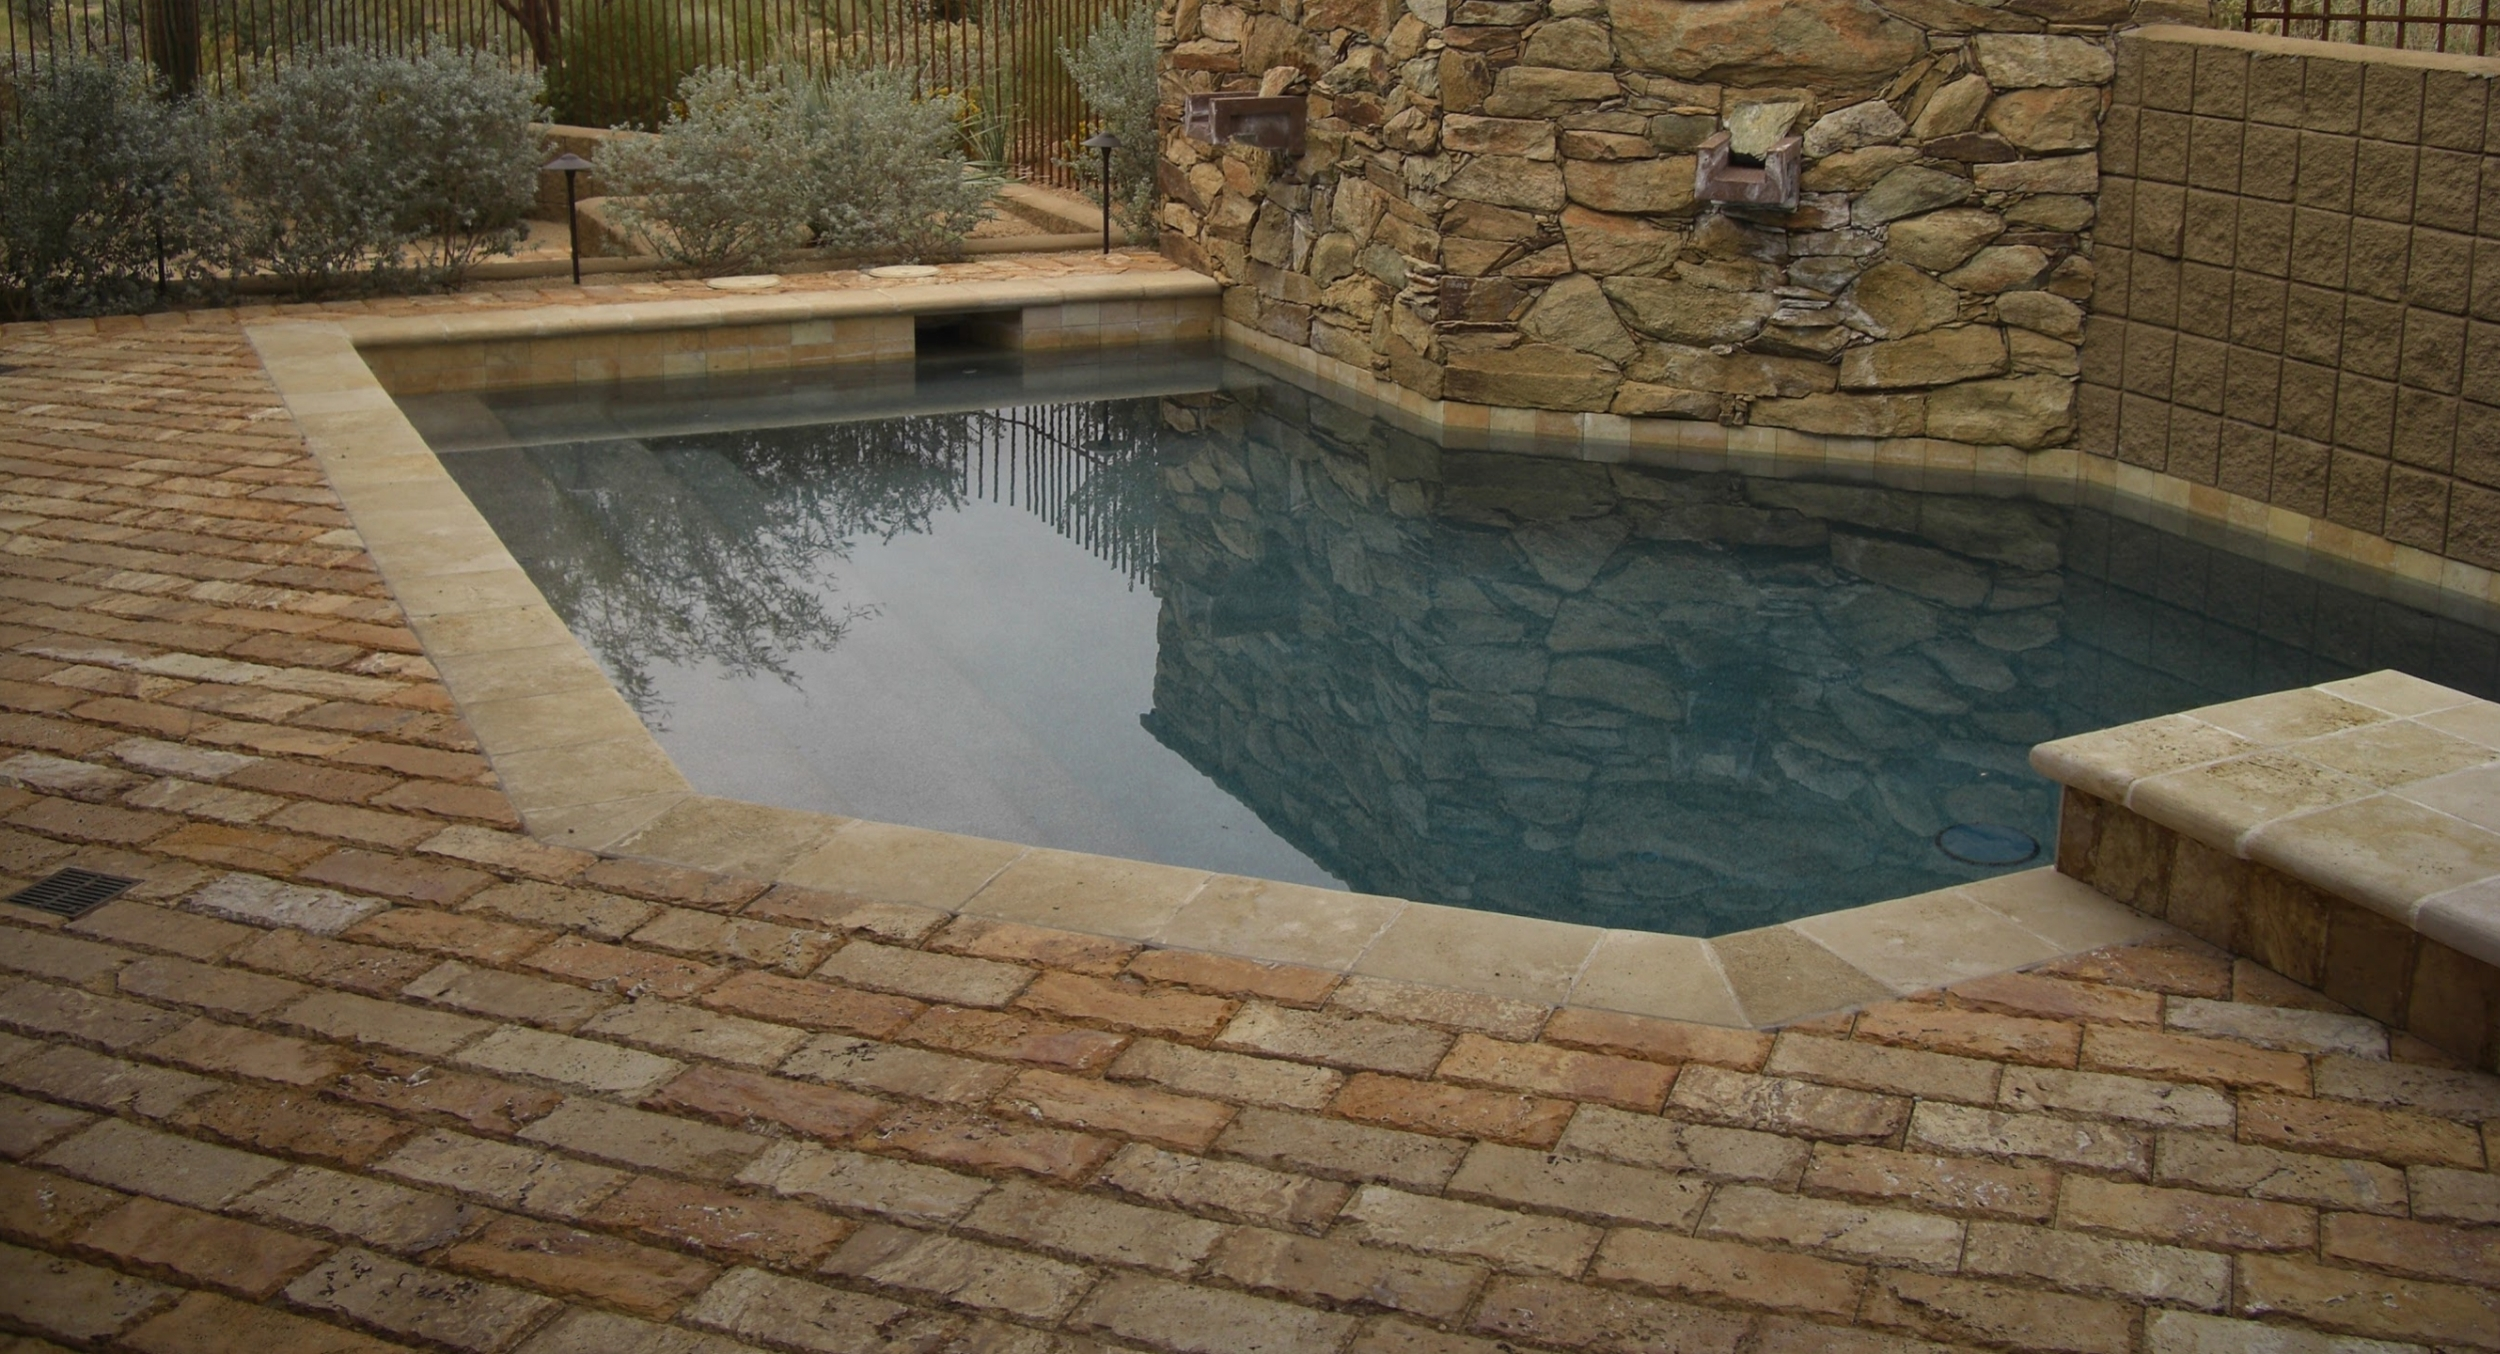 A gorgeous backyard even though it's small and has little room for landscaping. In Scottsdale, pool decks like this one are part of awesome outdoor living spaces. It's paved with dark, chiseled travertine brick to match the pool water feature and porch pillars..